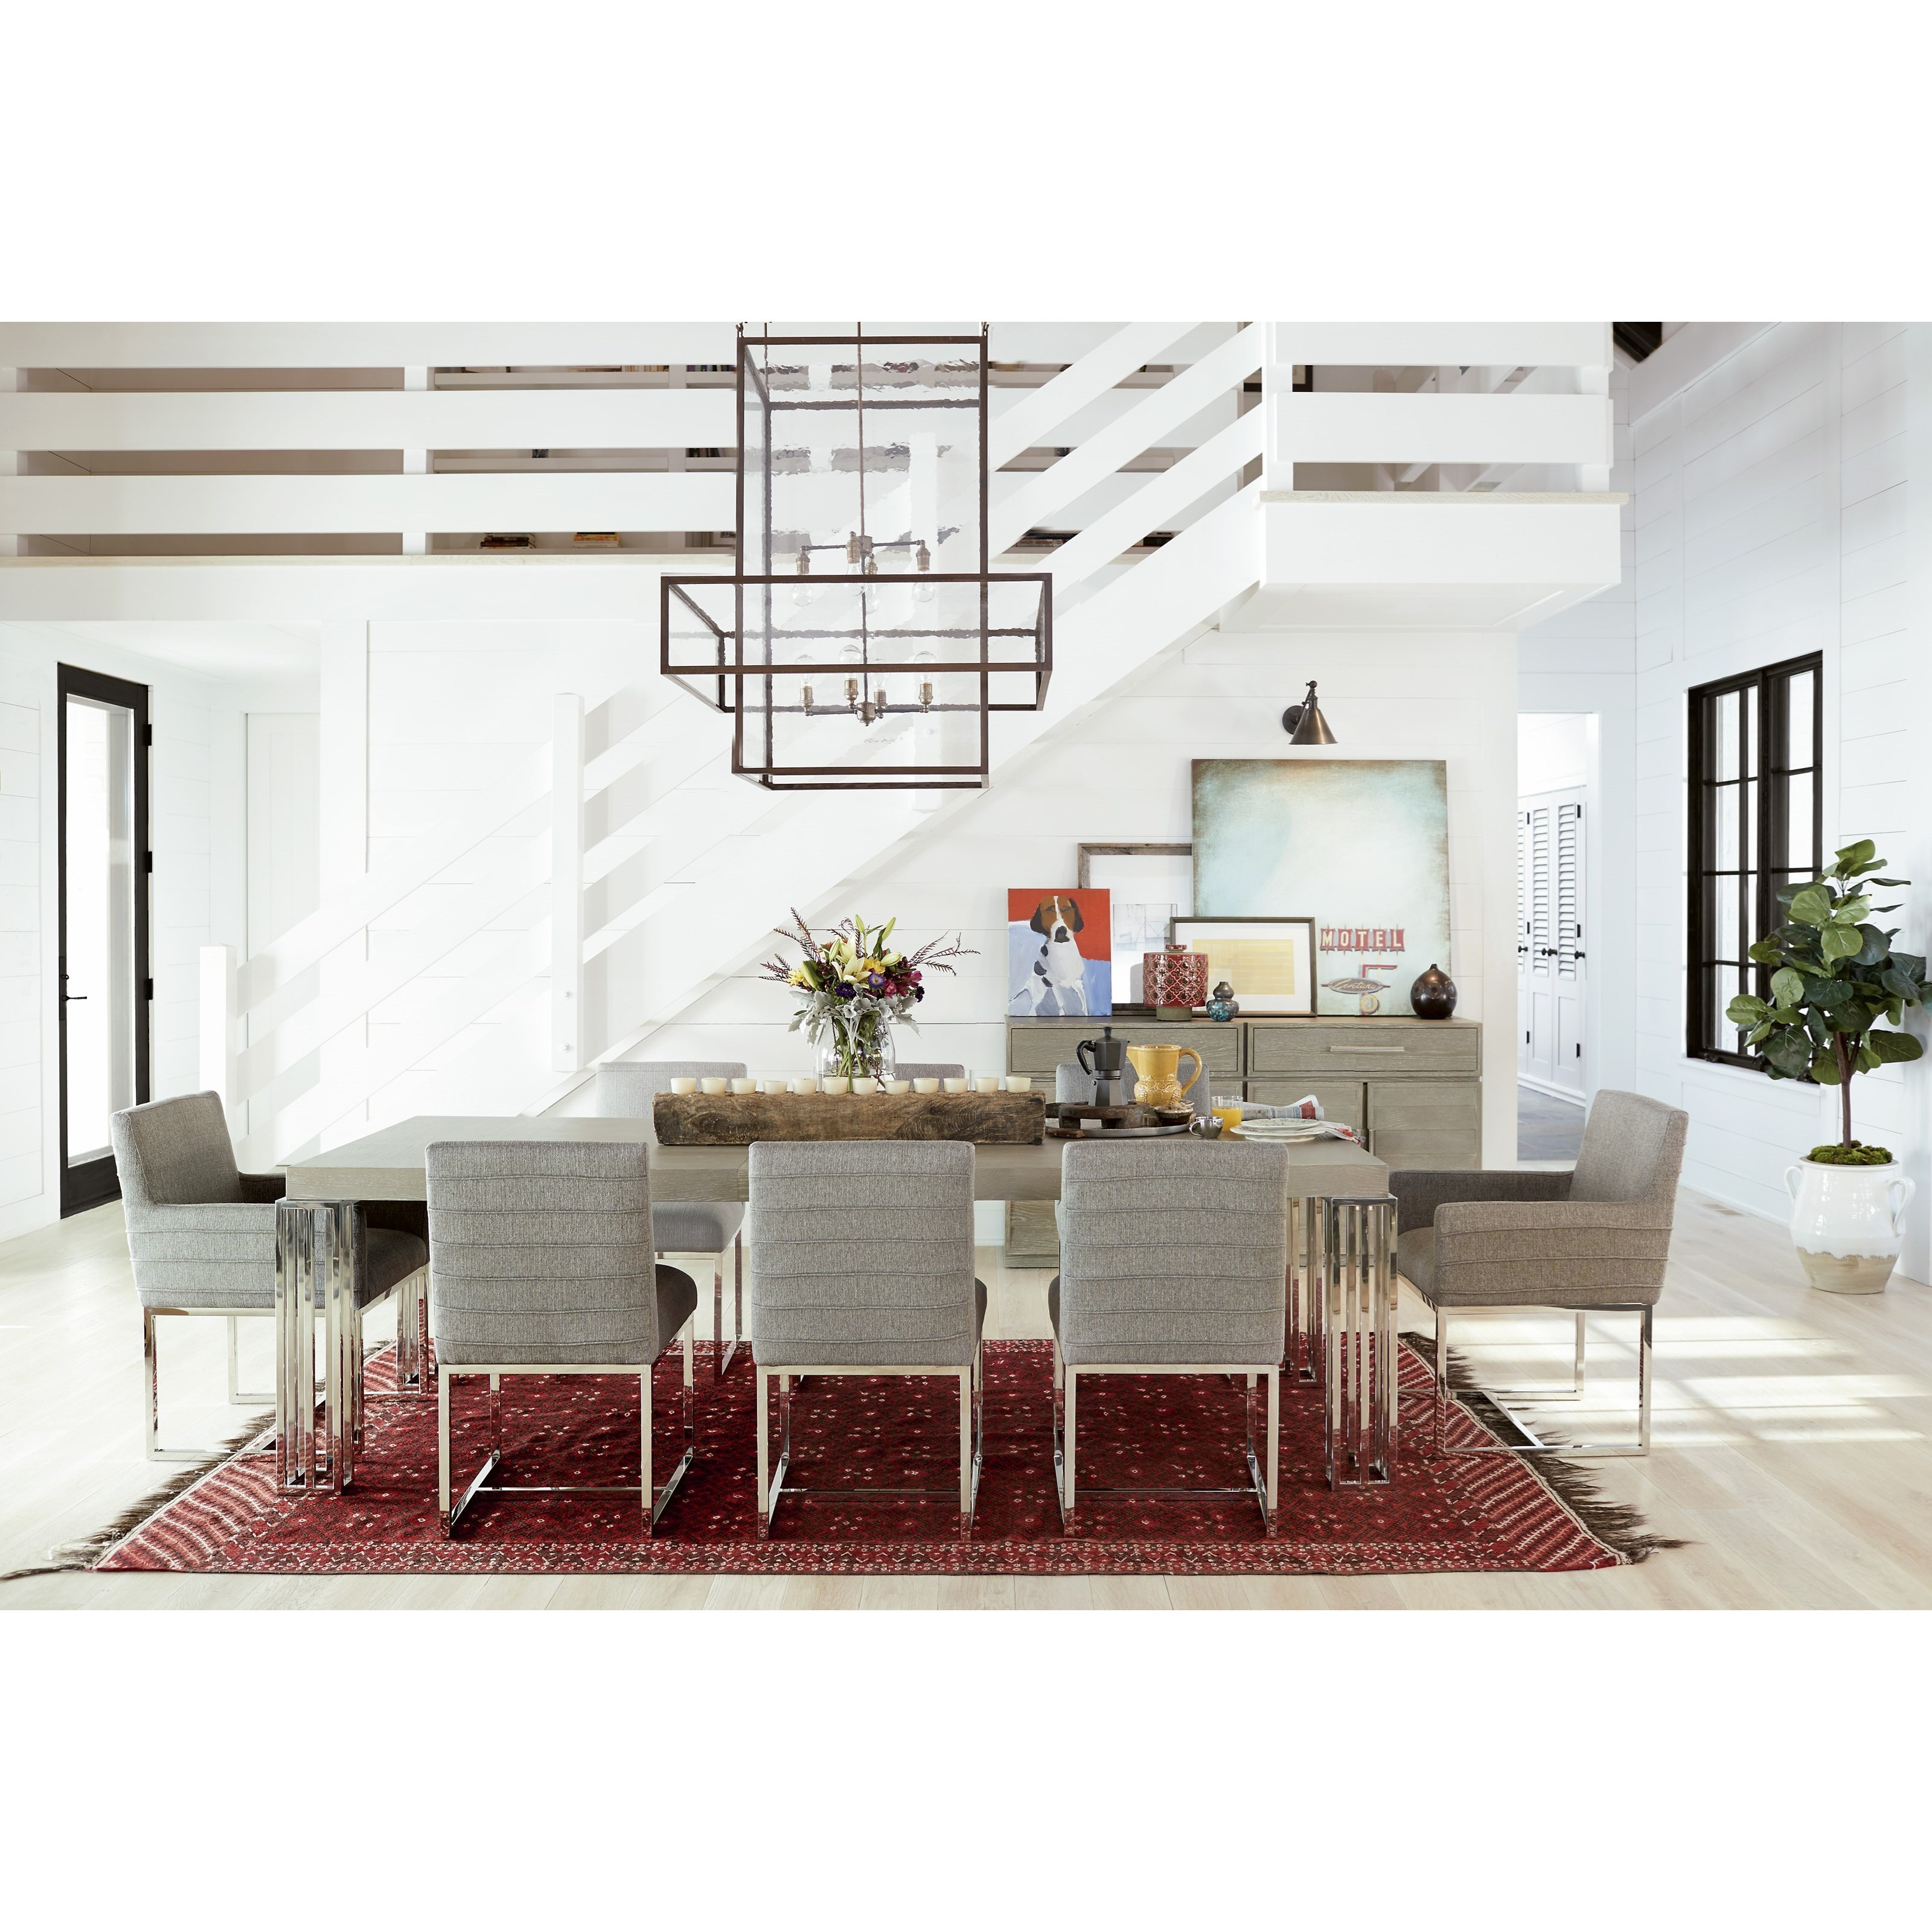 Zephyr Formal Dining Room Group by Universal at Nassau Furniture and Mattress